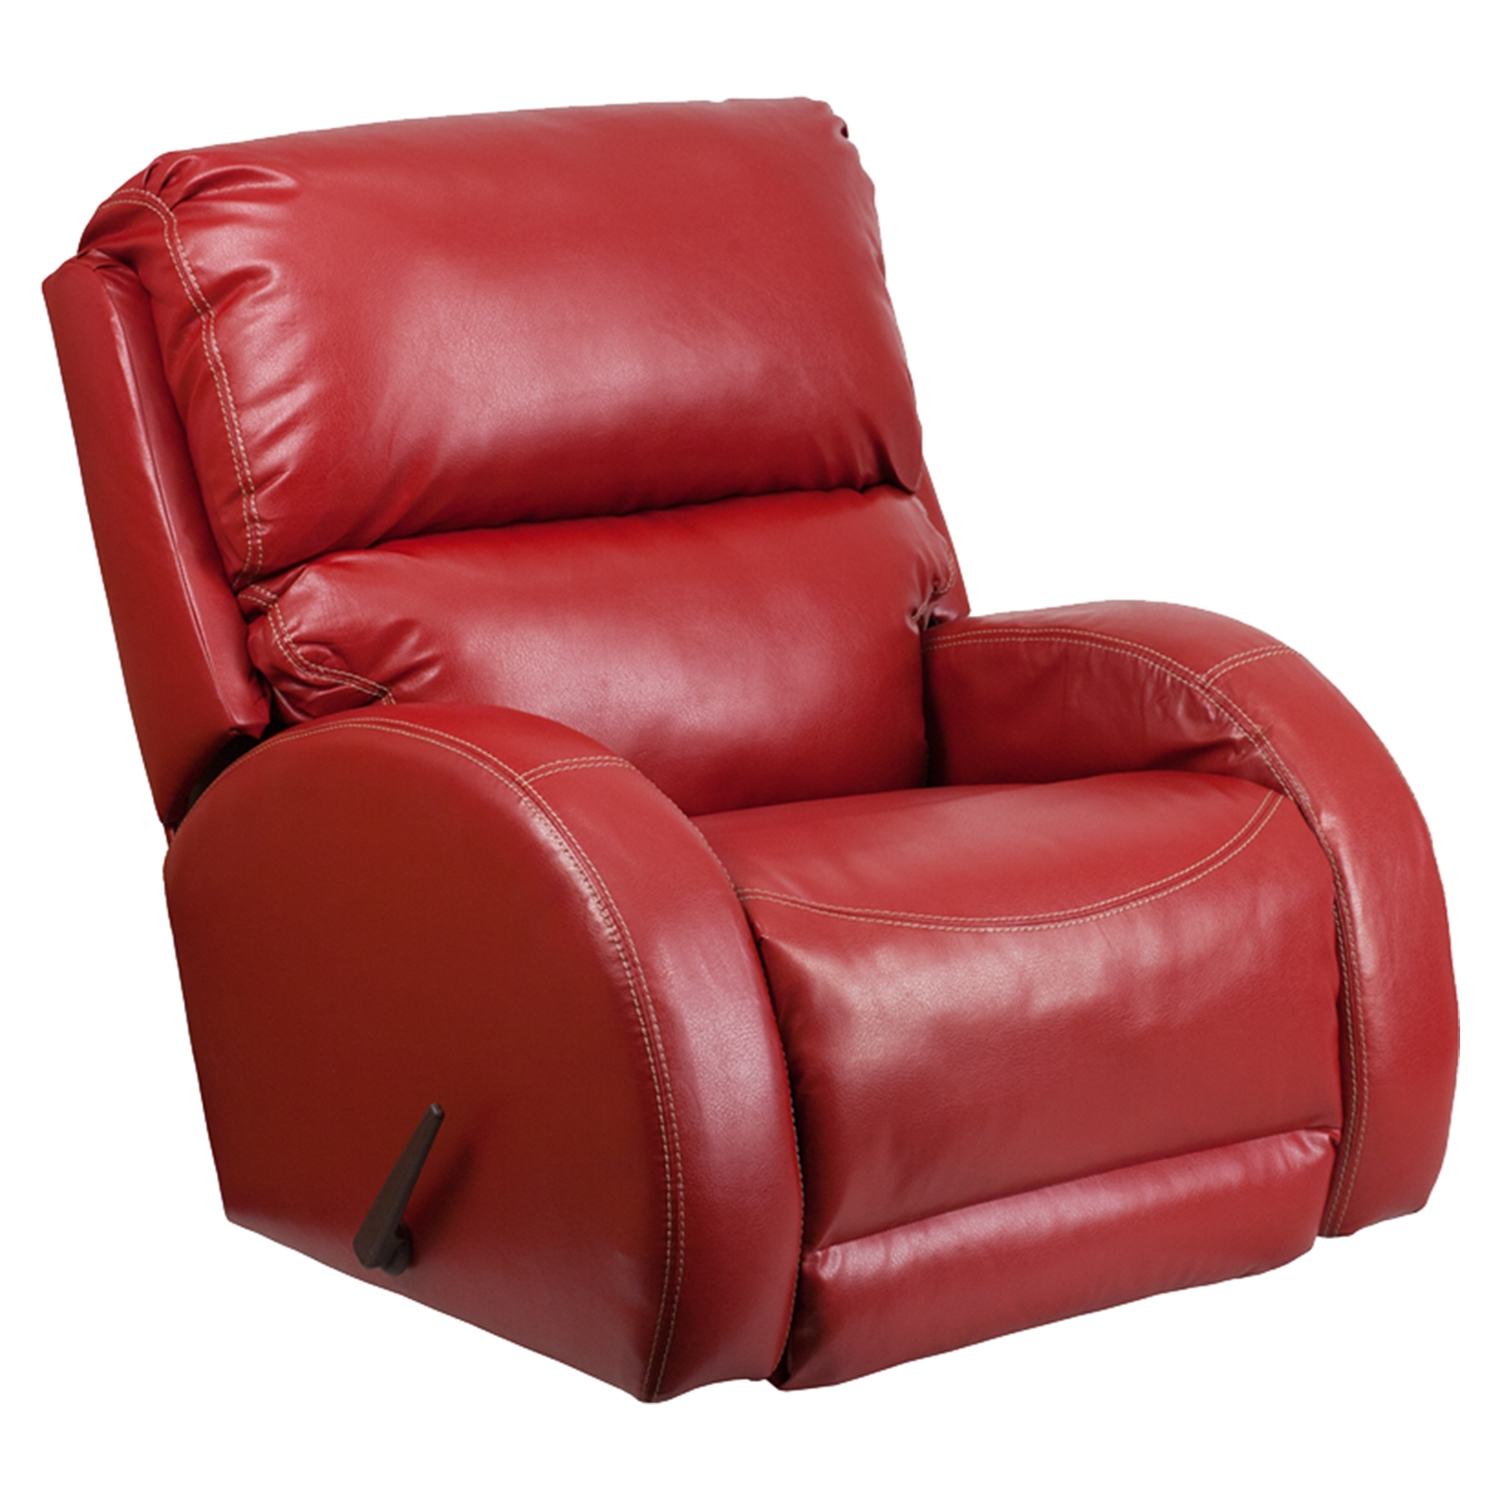 Ty Leather Rocker Recliner Red Dcg Stores